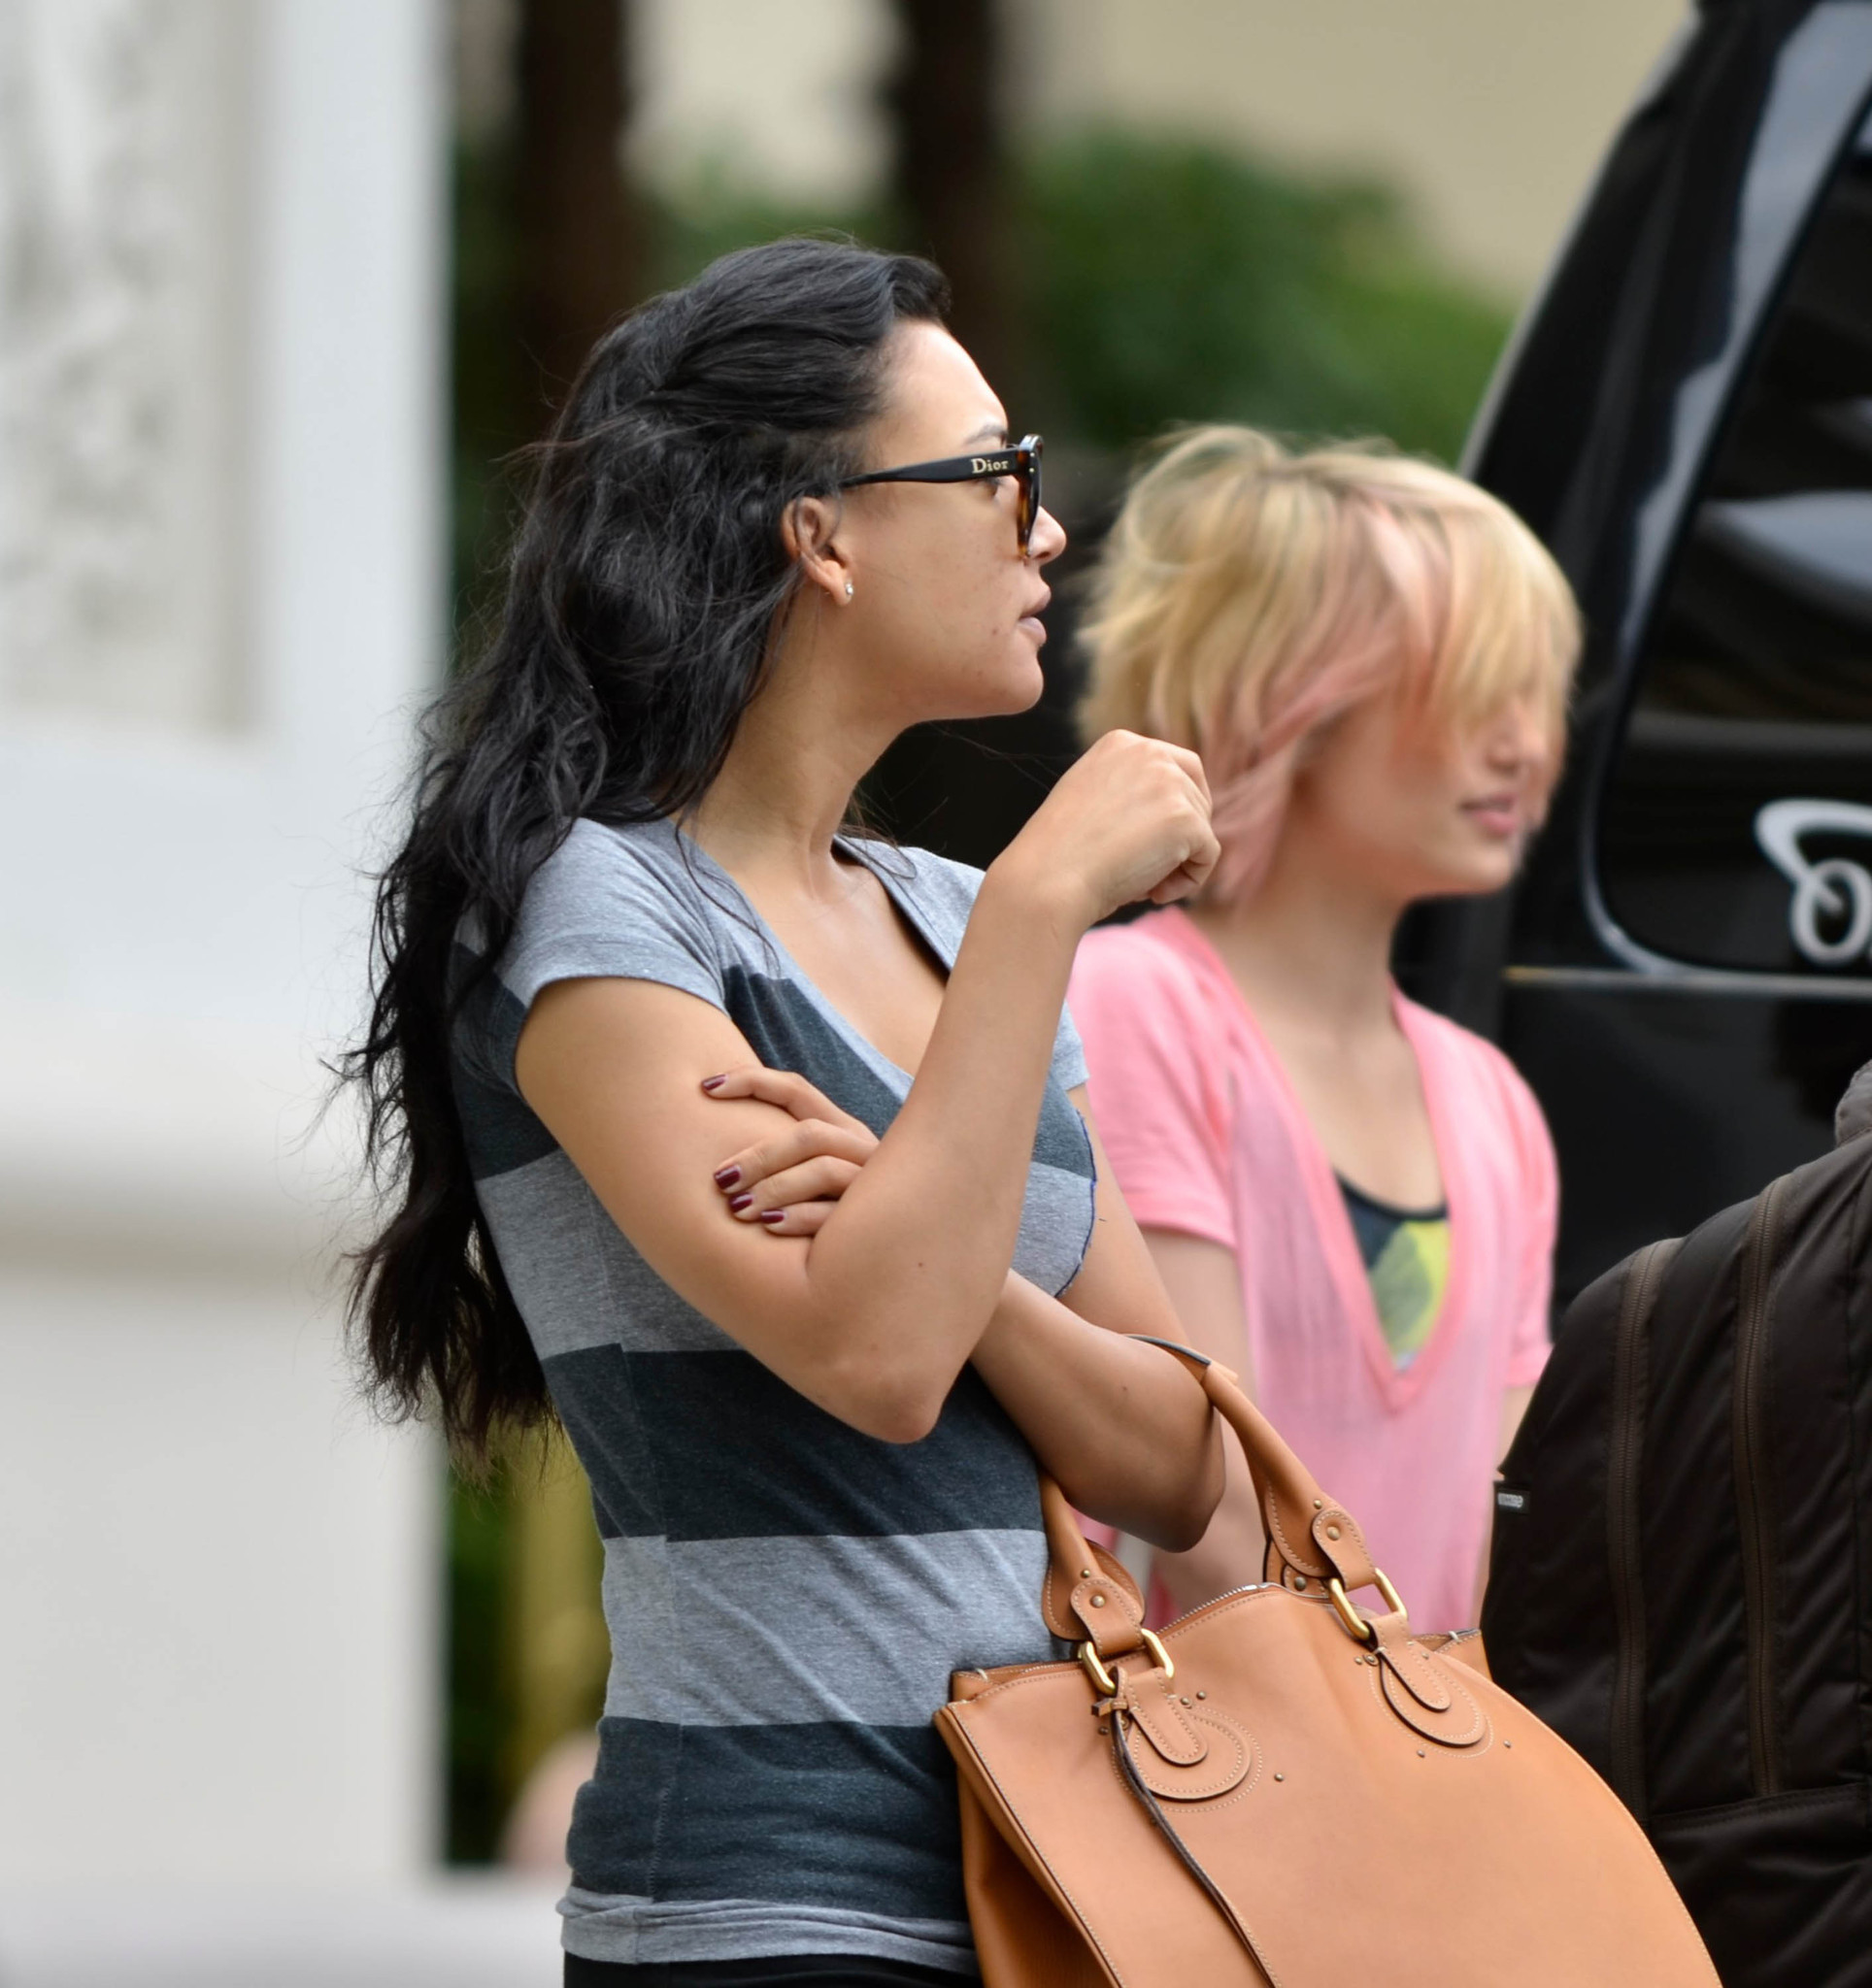 The Glee Cast Heads to Rehearsal